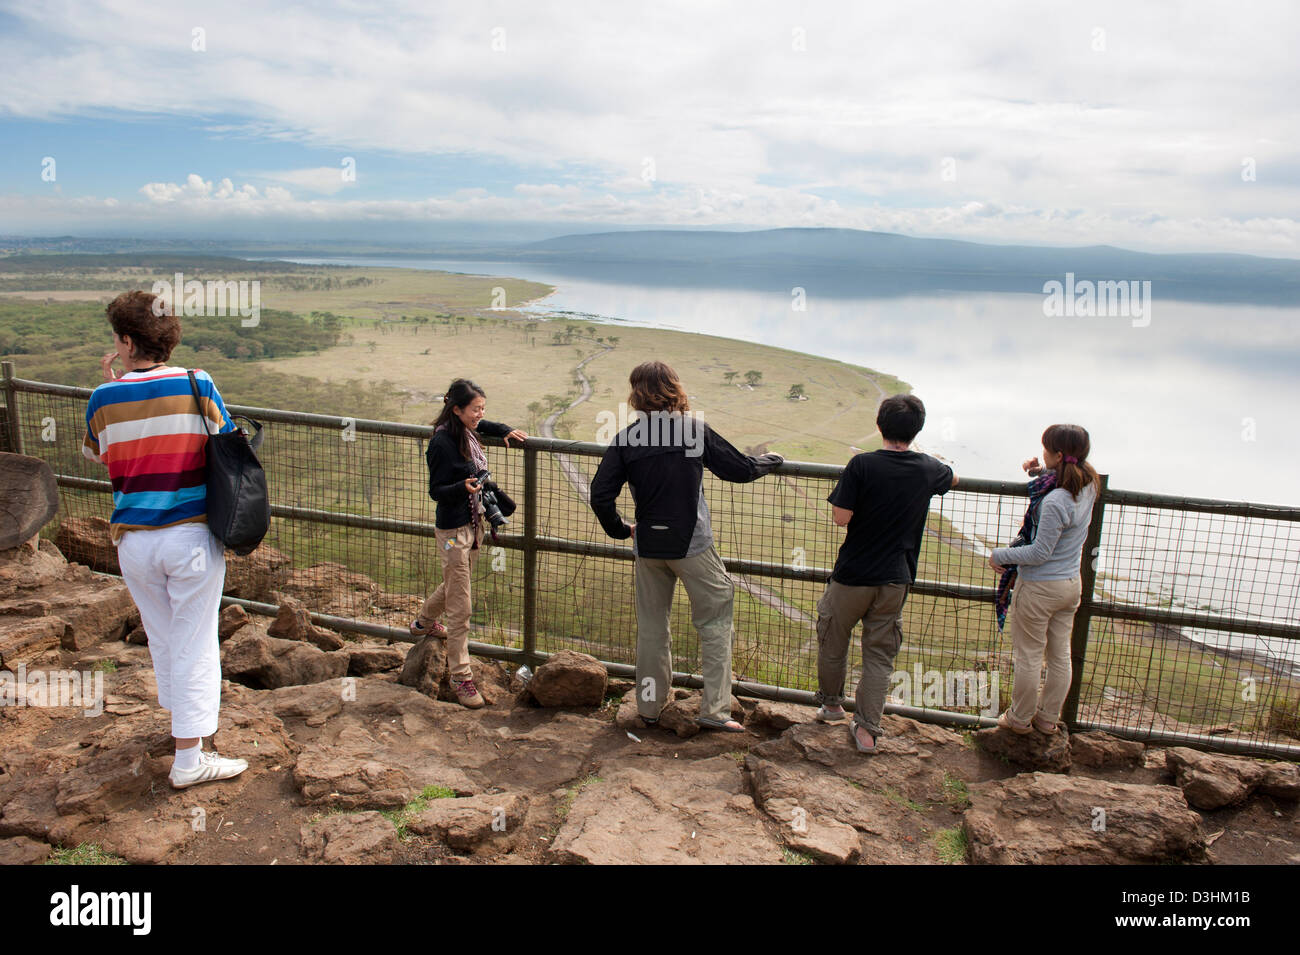 tourists taking in the view from baboon cliff, Lake Nakuru National Park, Kenya Stock Photo